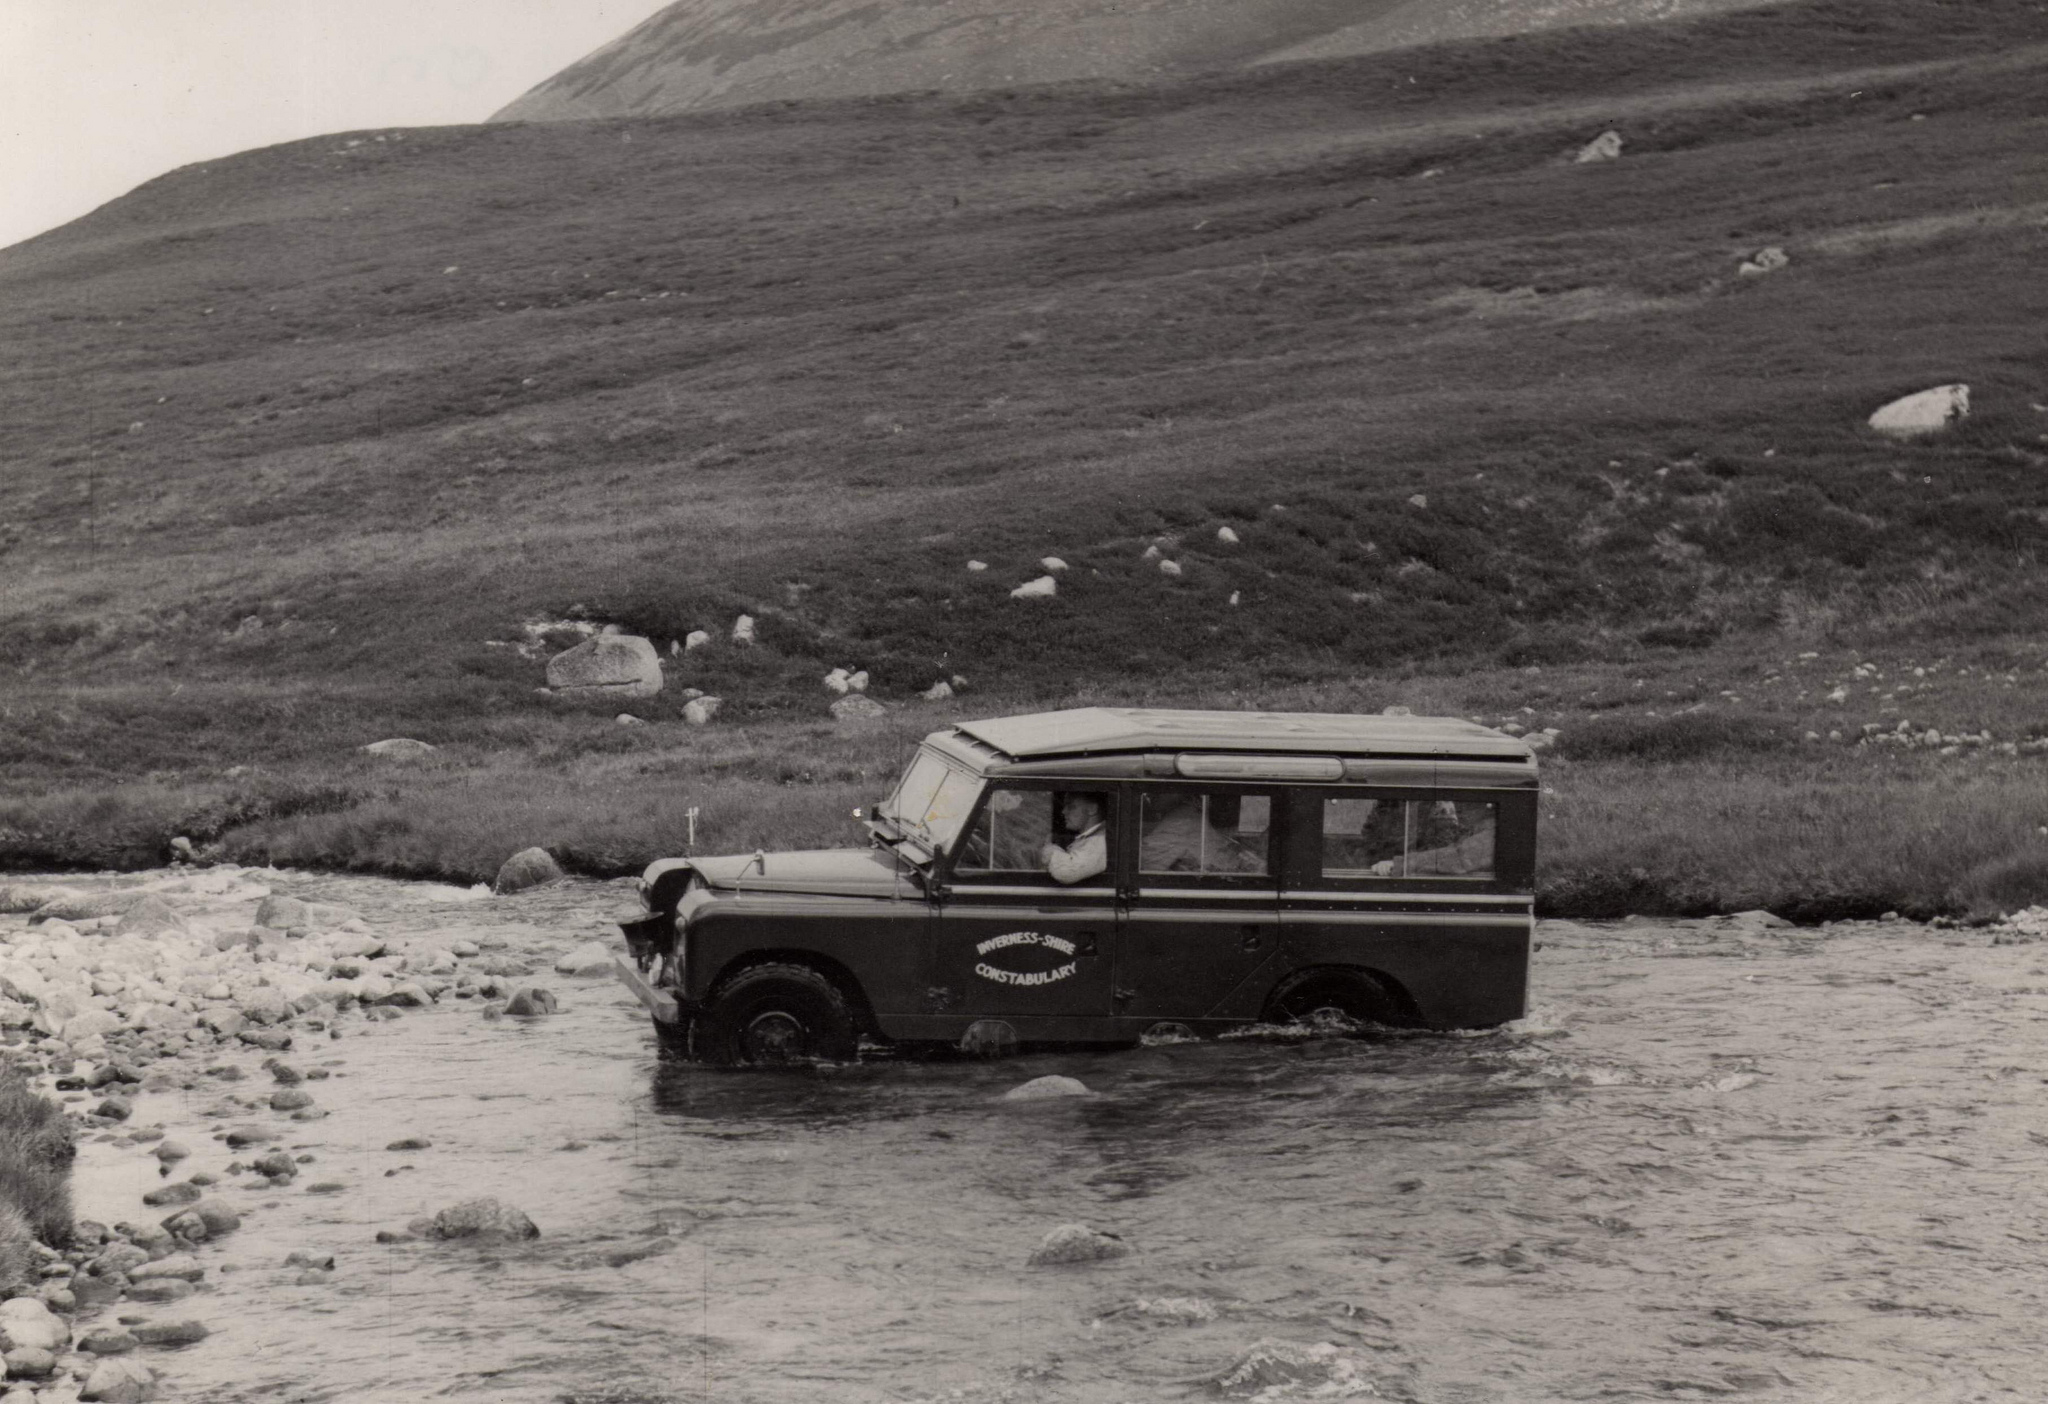 """Green LWB Land Rover of Inverness-shire Constabulary demonstrates """"off road"""" rather well as it negotiates a river high in the Cairmgorms range during Mountain Rescue duty. Flickr - Dave Conner."""